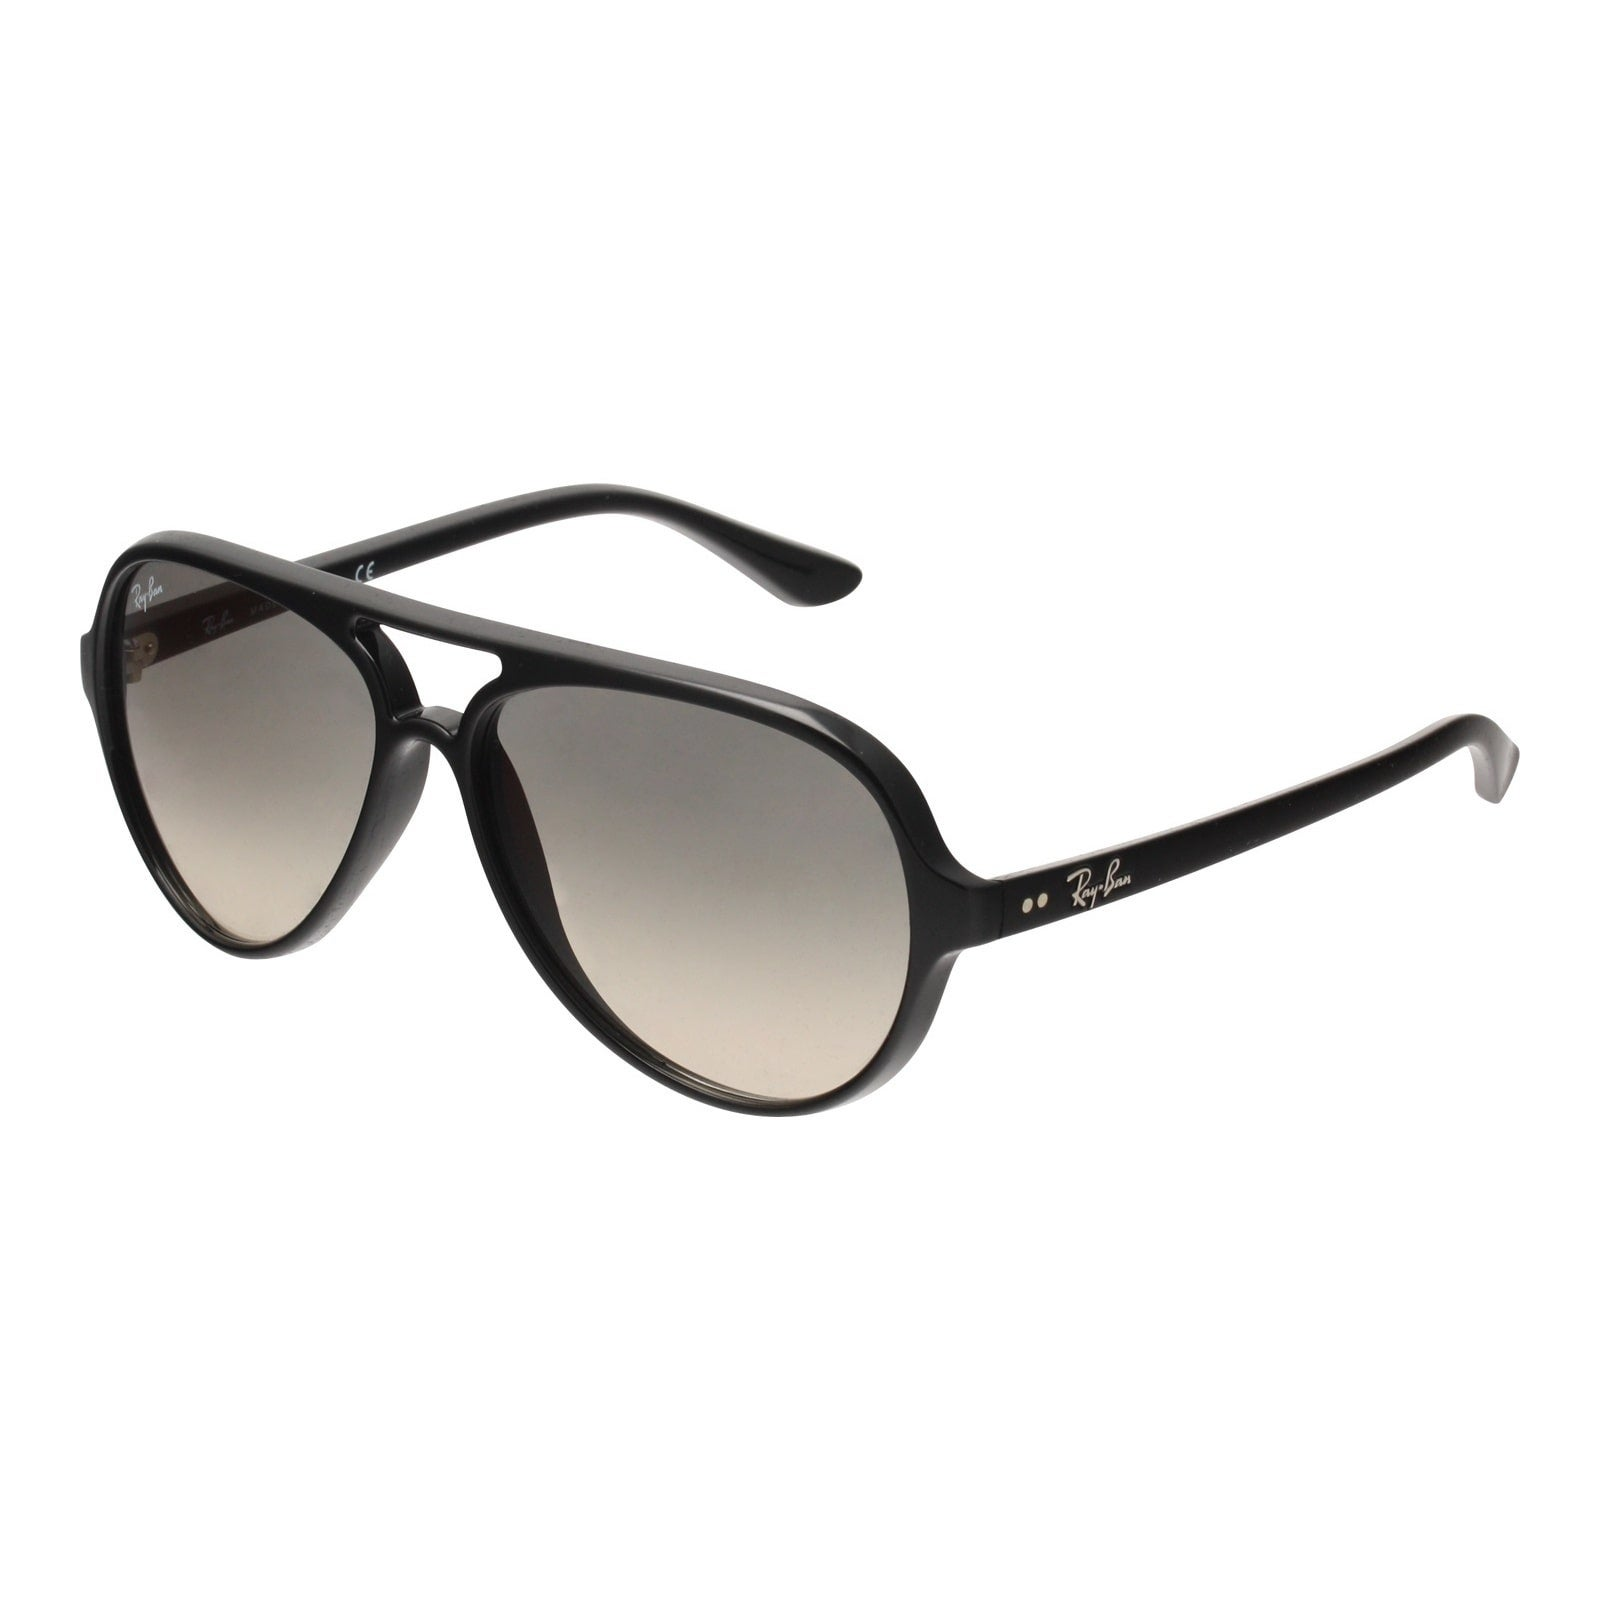 295890db84485f Ray-Ban RB4125 601 32 Cats 5000 Black Frame Light Grey Gradient 59mm Lens  Sunglasses